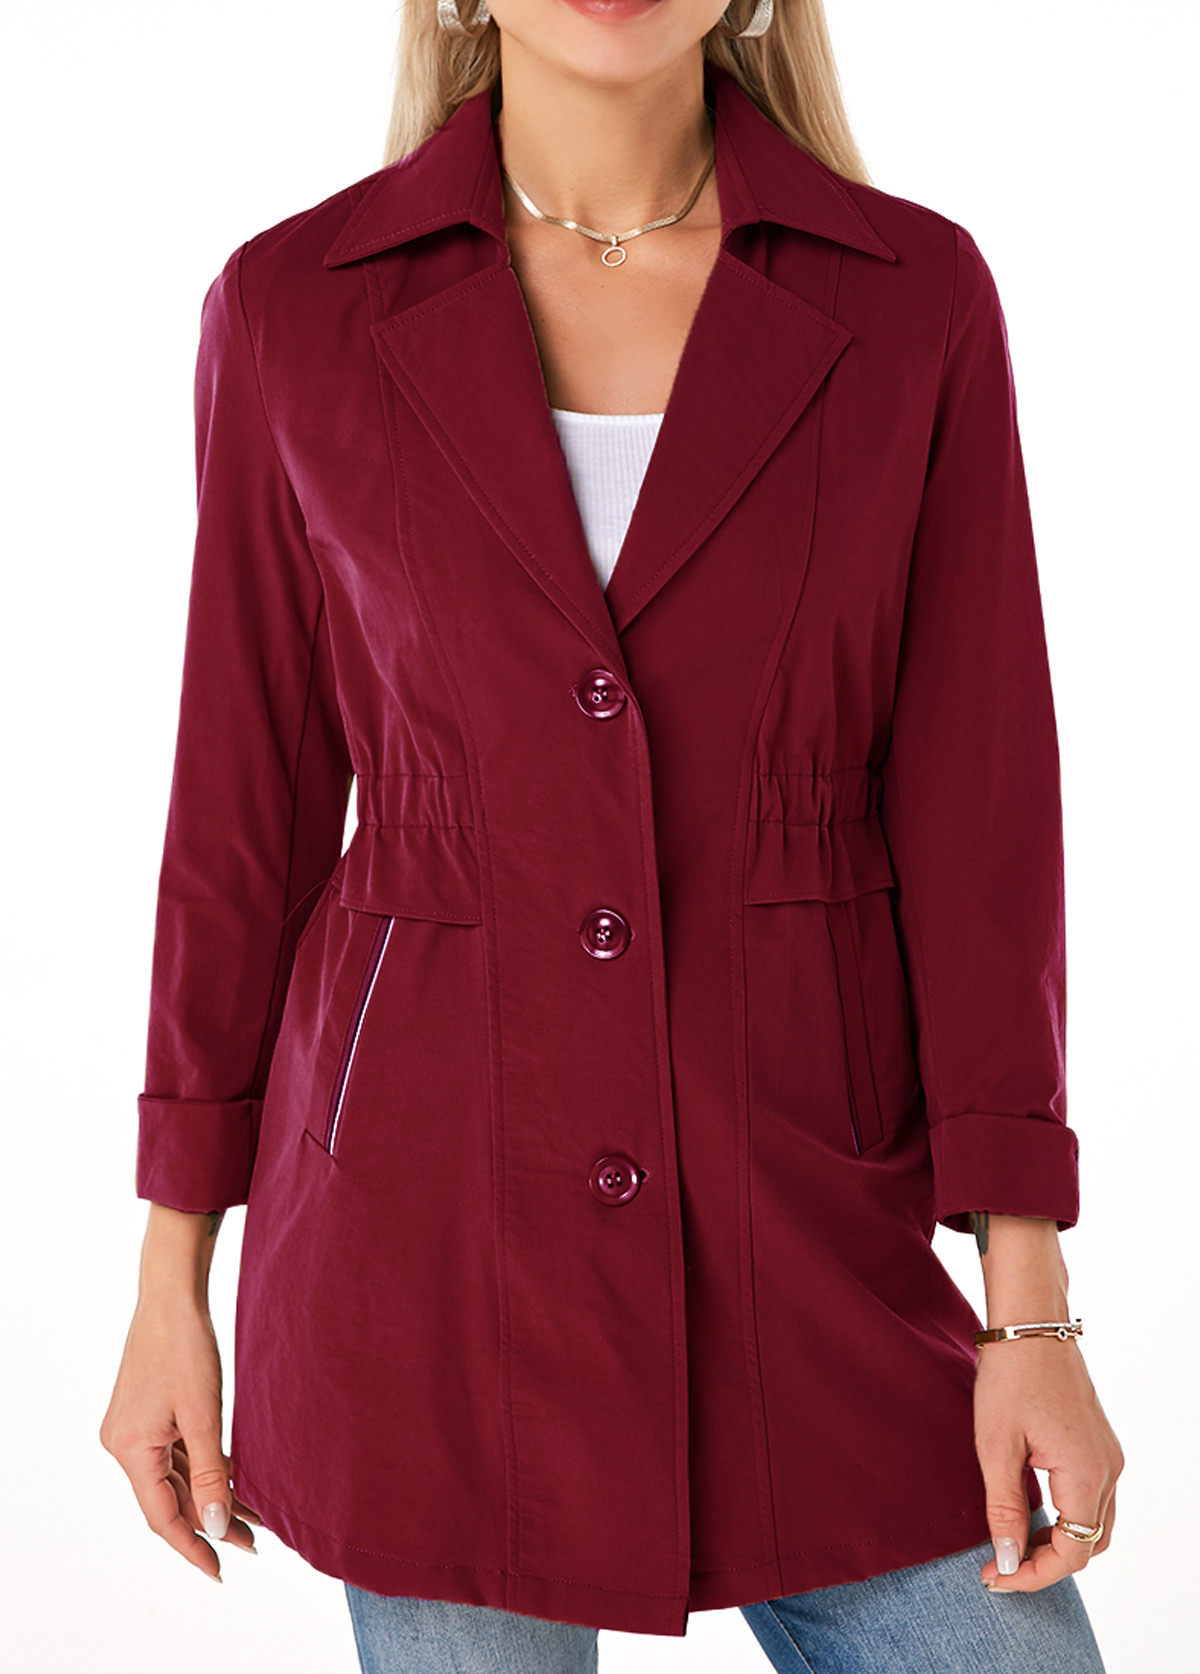 Button Up Turndown Collar Pocket Trench Coat